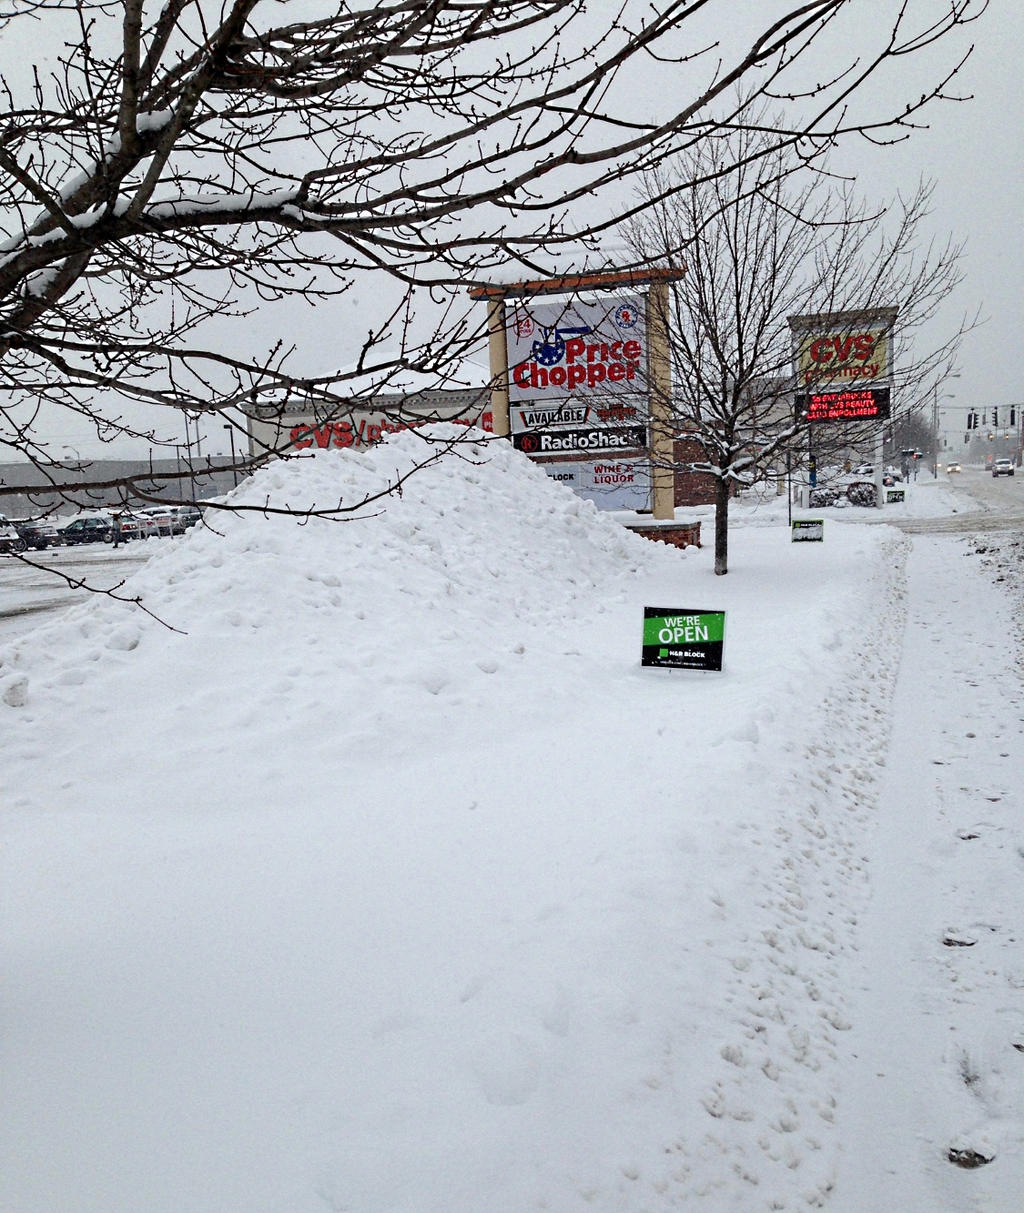 Snow Covered Neighborhood Groundhogs Day 2015 4 By Steve